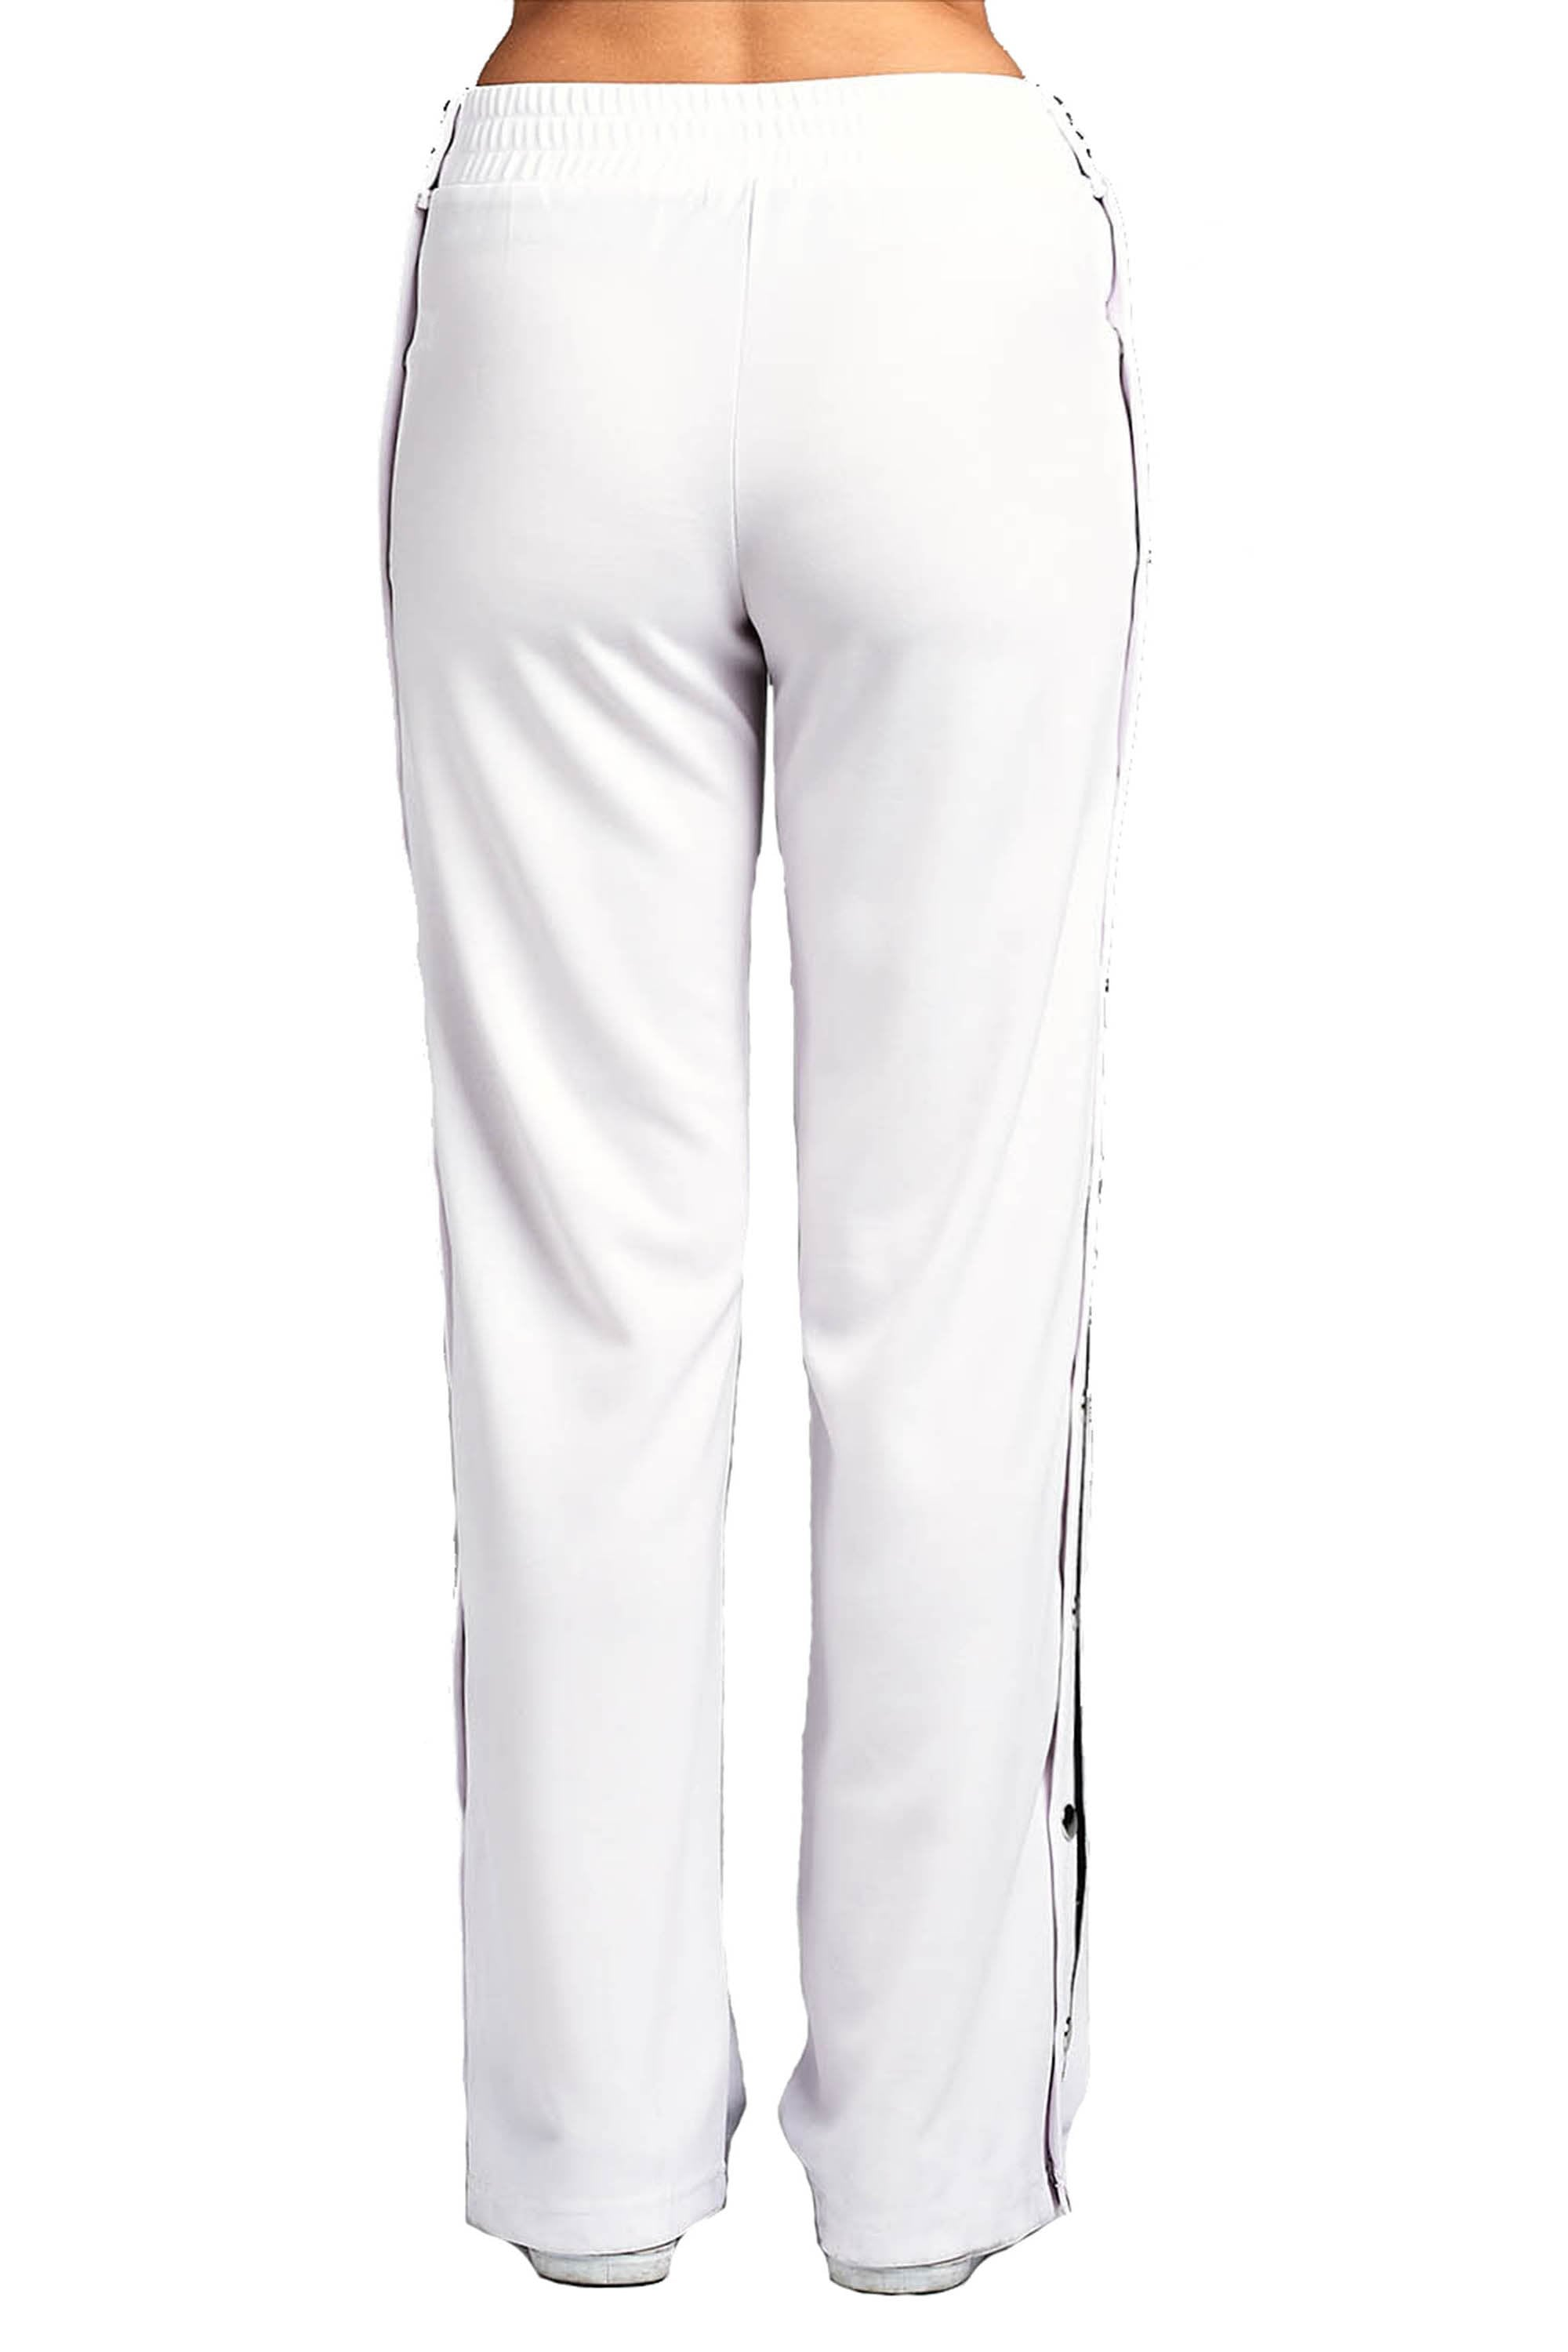 Elastic High Waist Wide Leg Side Split Stripe Snap-On Buttoned Casual Tearaway Long Sweatpants